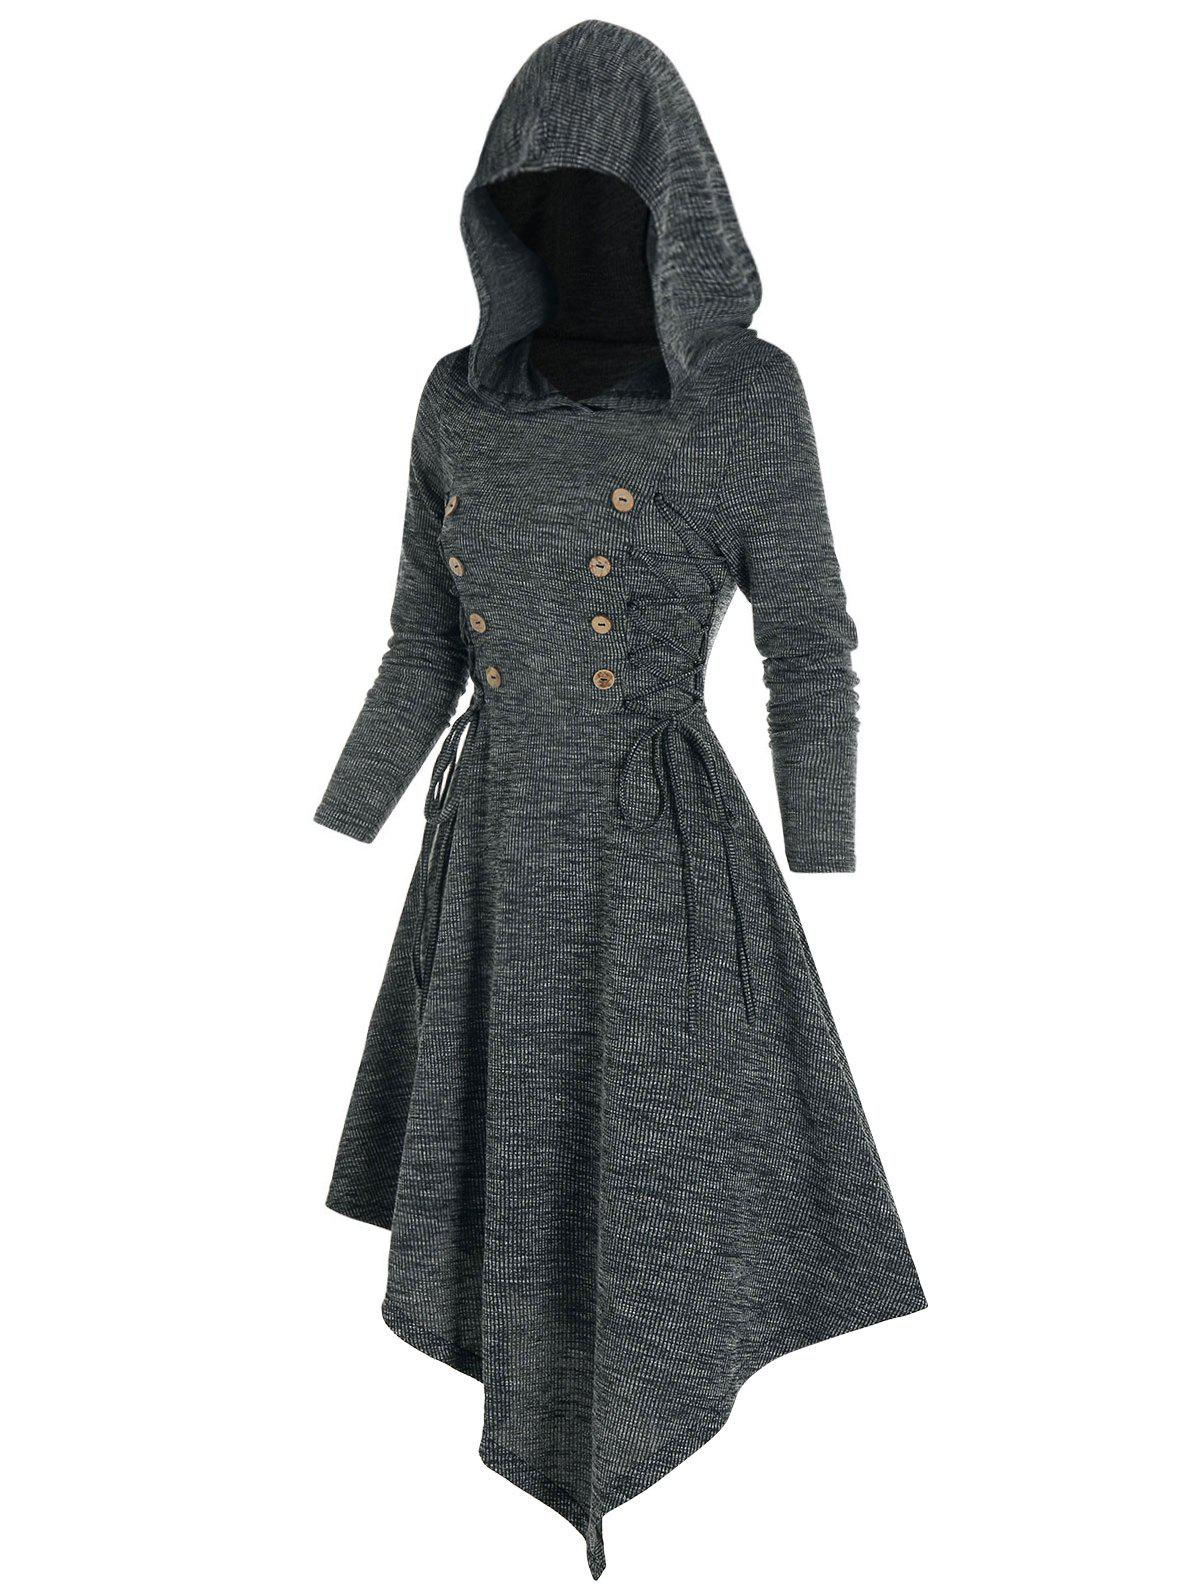 Lace Up Hooded Asymmetrical Knitted Dress - ASH GRAY L